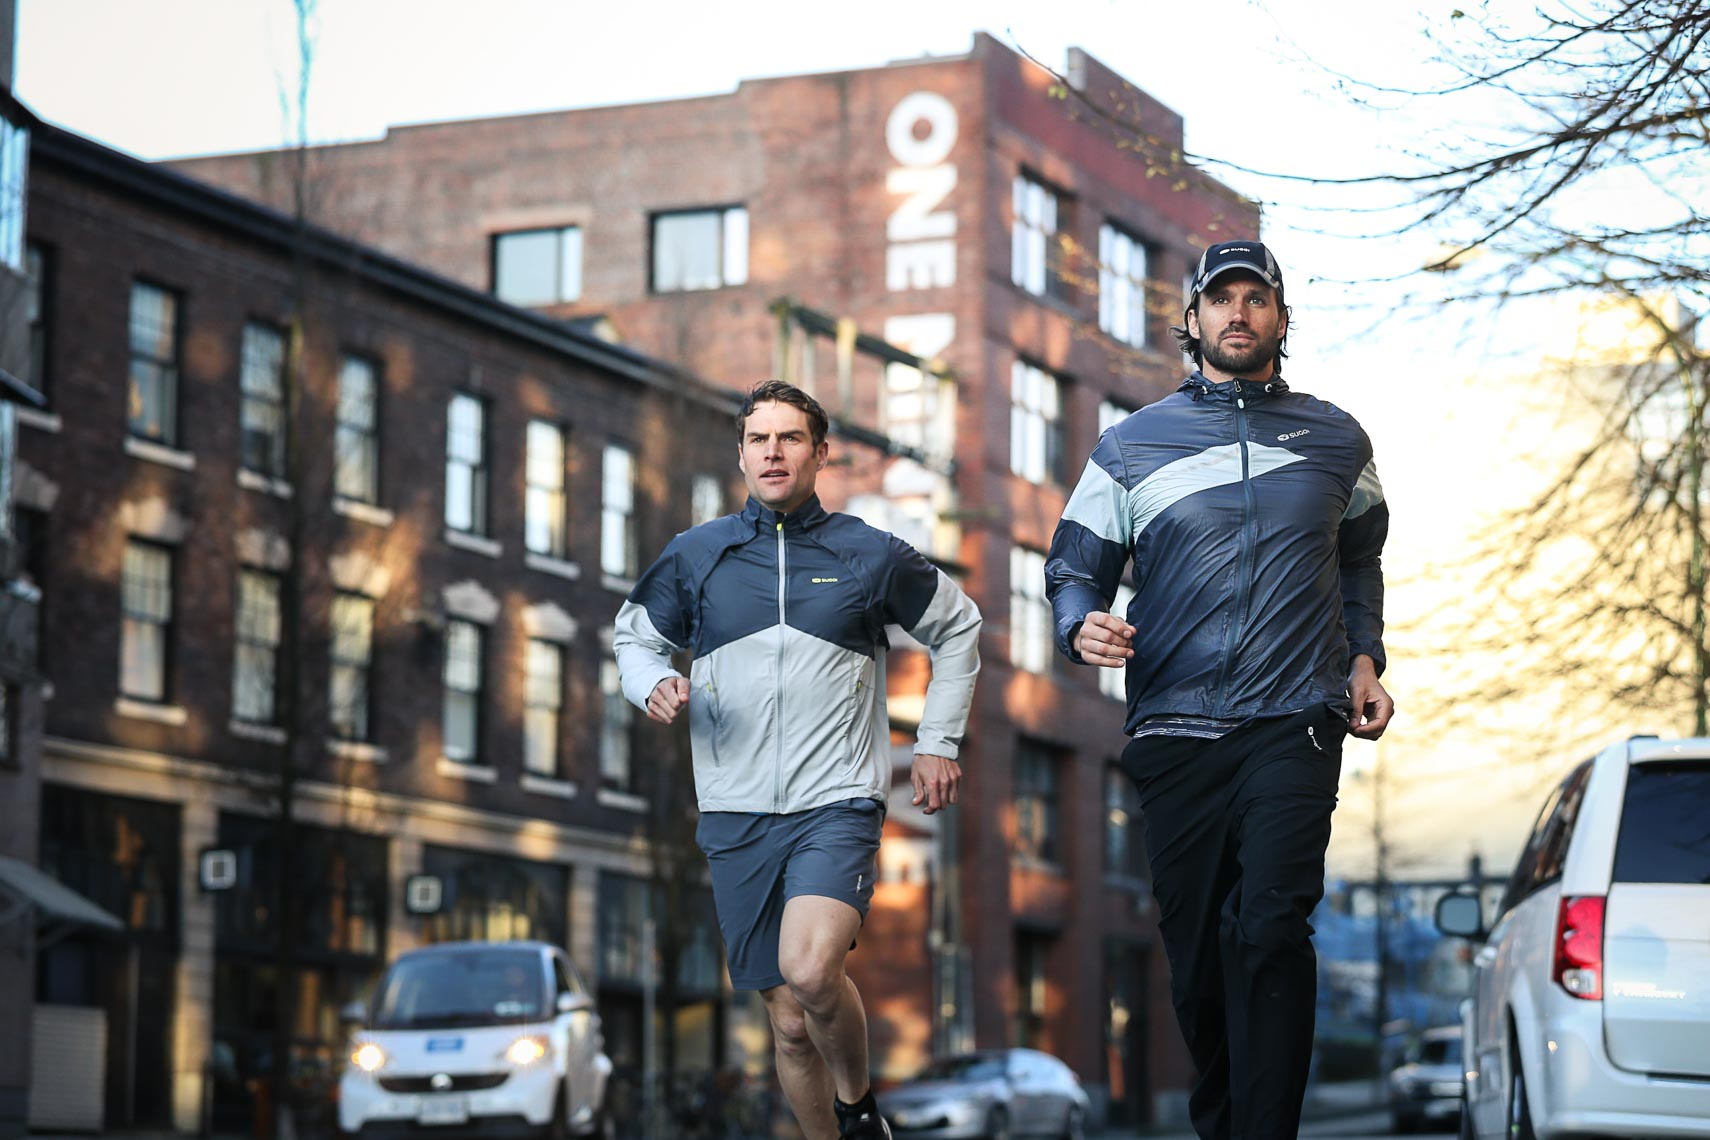 Running athletes in Sugoi jackets in gastown Vancouver by commercial apparel photographer